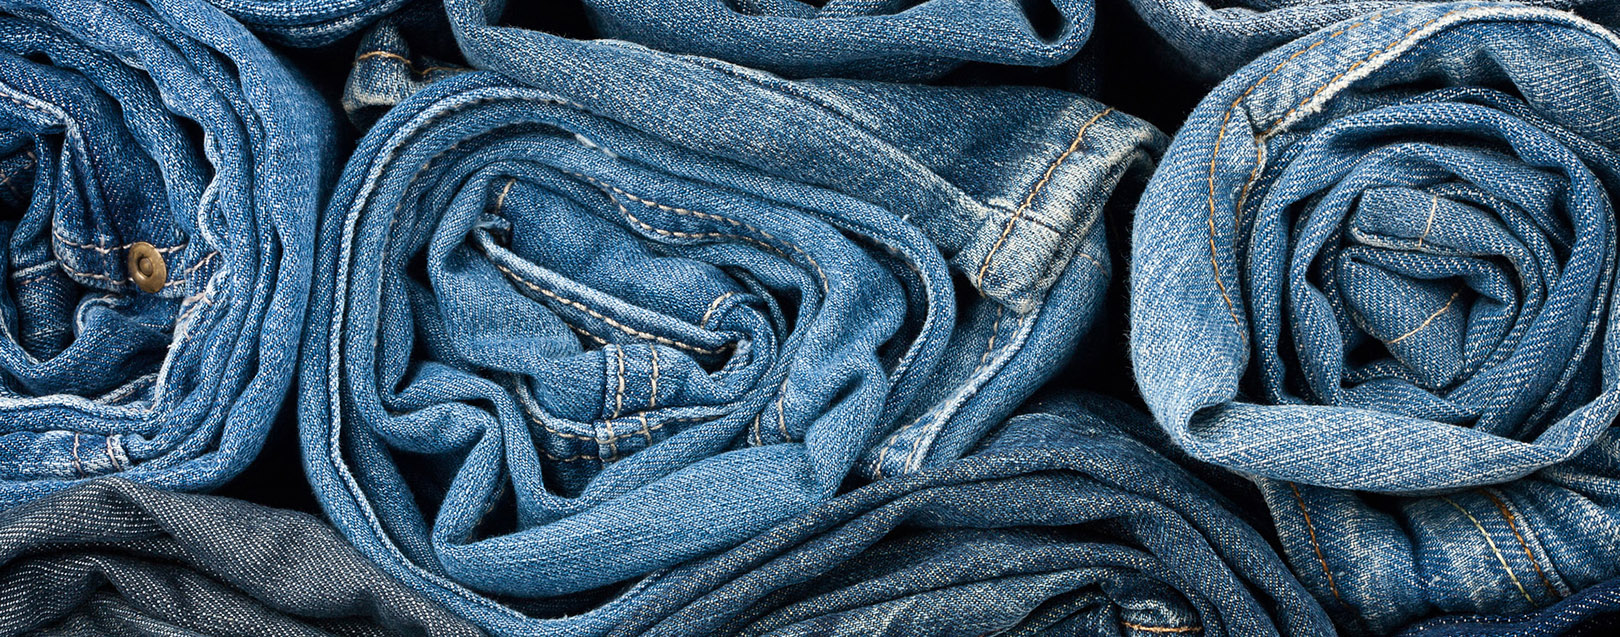 Indian denim industry may touch Rs 54,600 cr by 2023